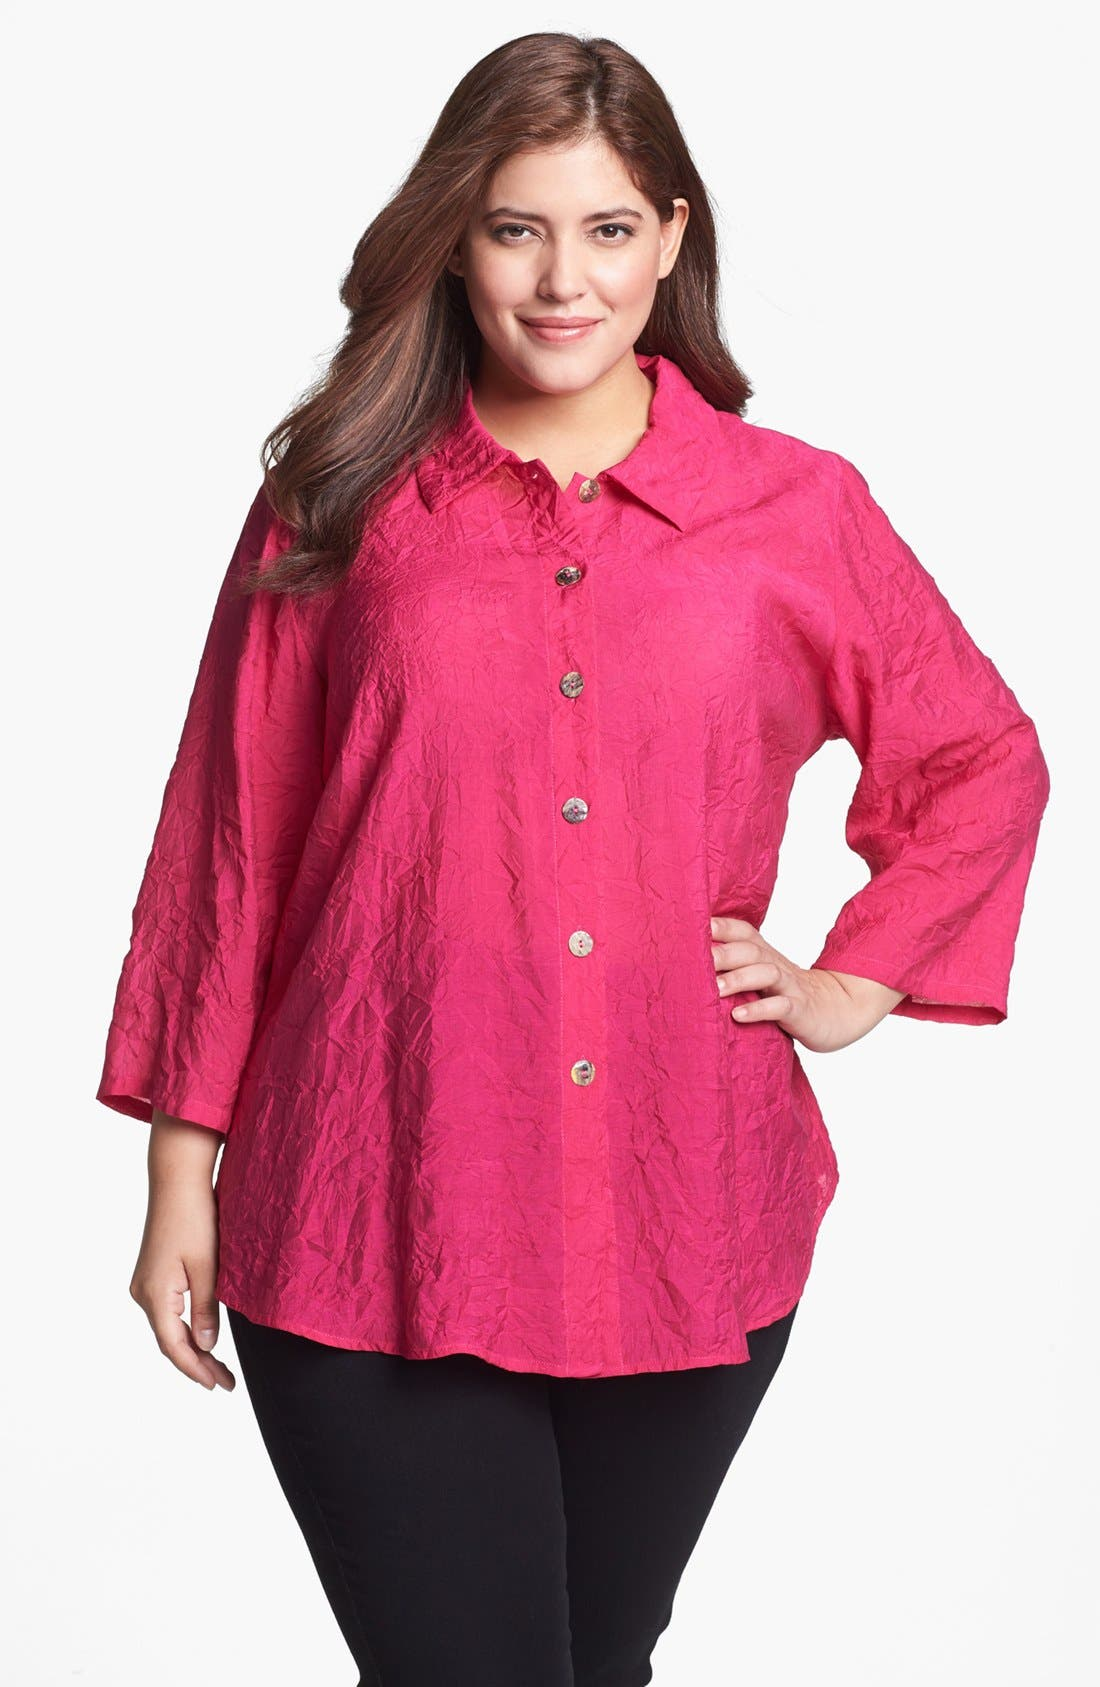 Alternate Image 1 Selected - Citron Crinkled Blouse (Plus Size)